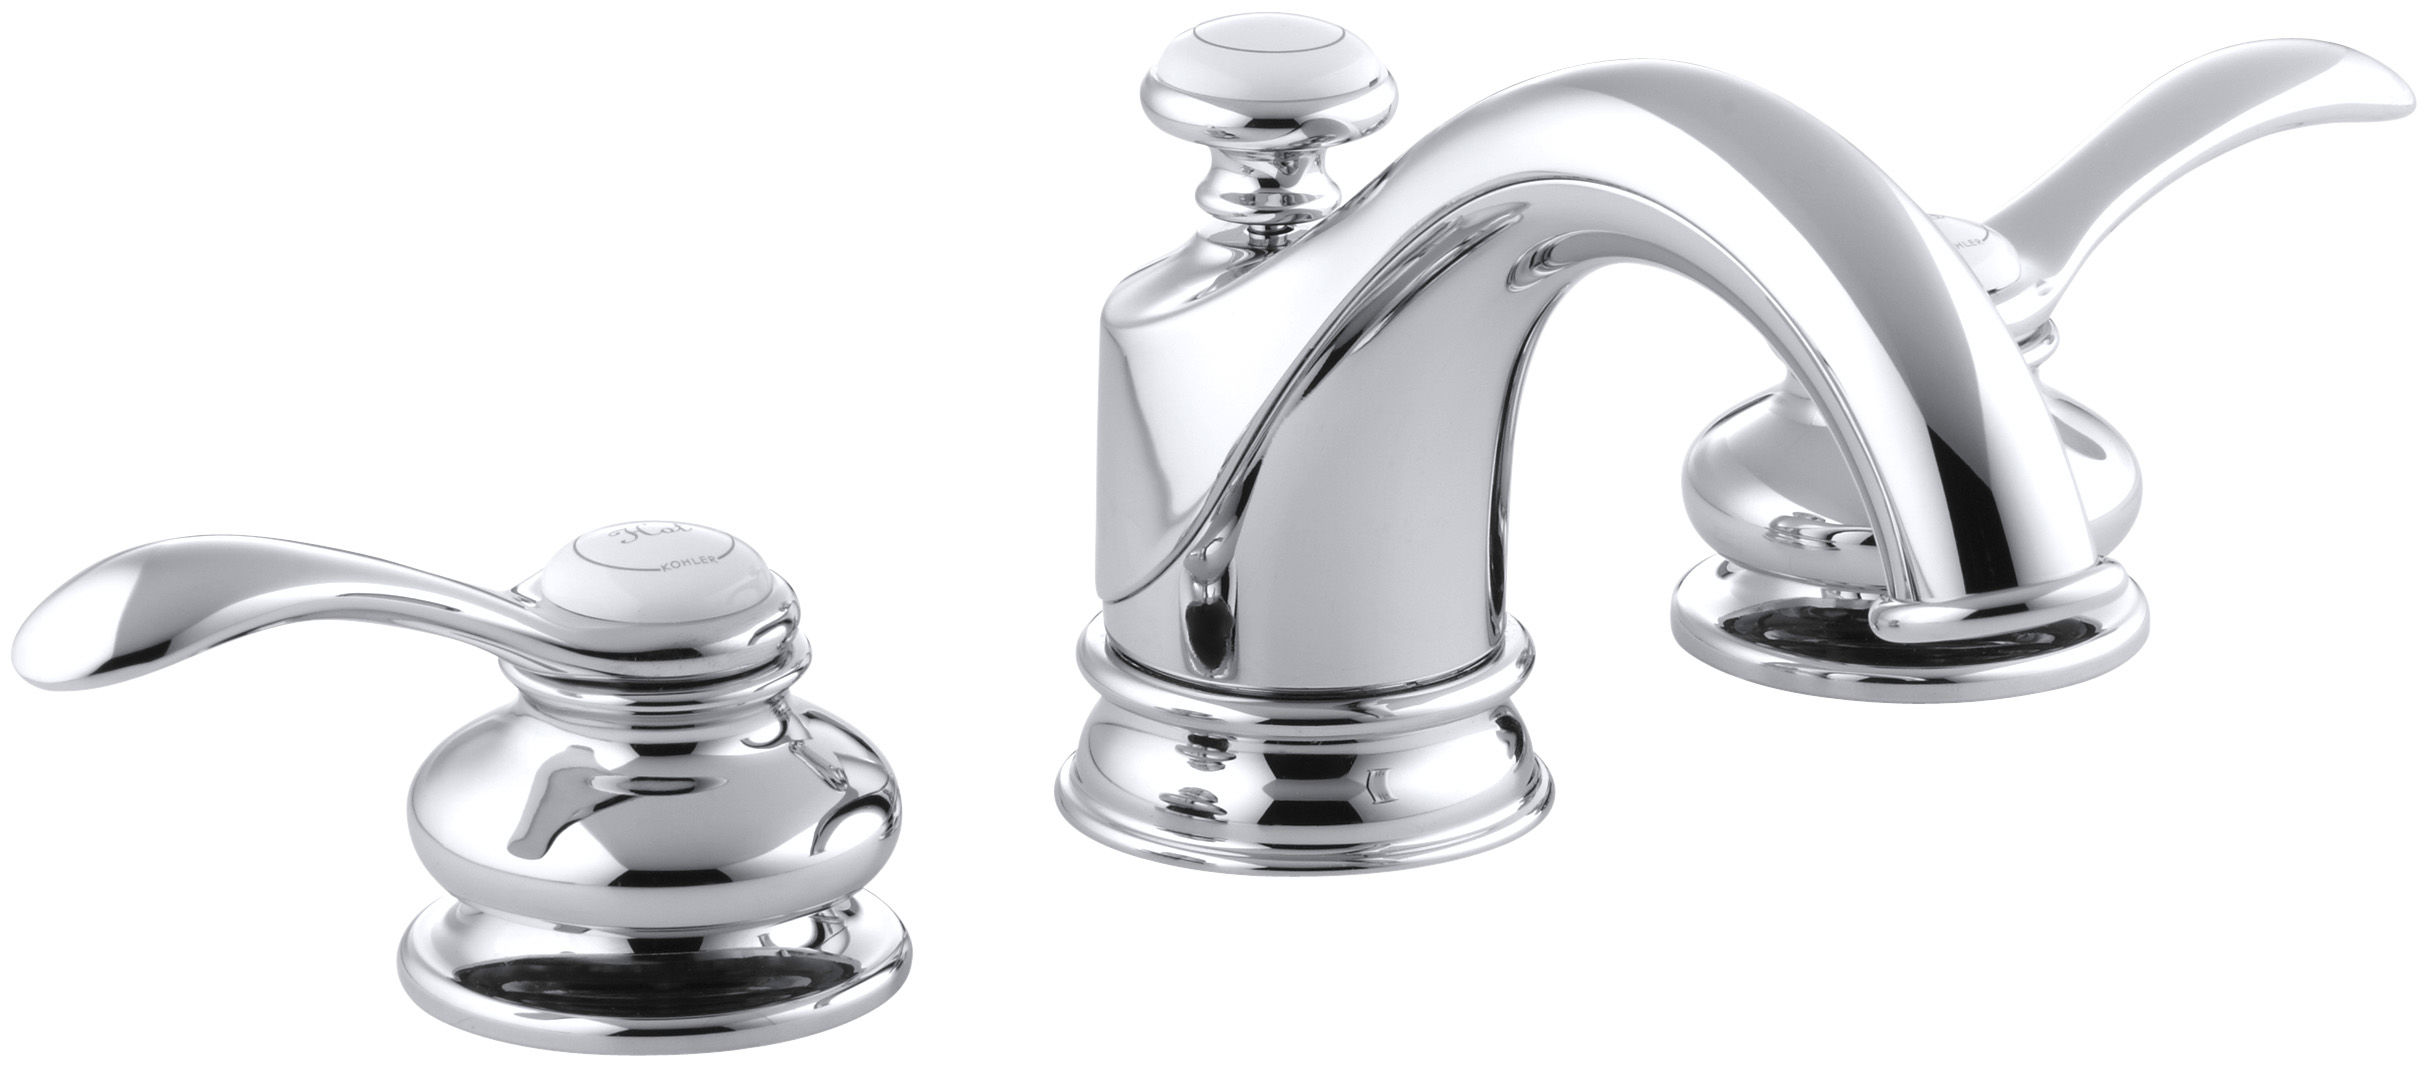 Kohler K 12265 4 Cp Polished Chrome Fairfax Widespread Bathroom Faucet With Ultra Glide Valve Technology Free Metal Pop Up Drain Embly Purchase